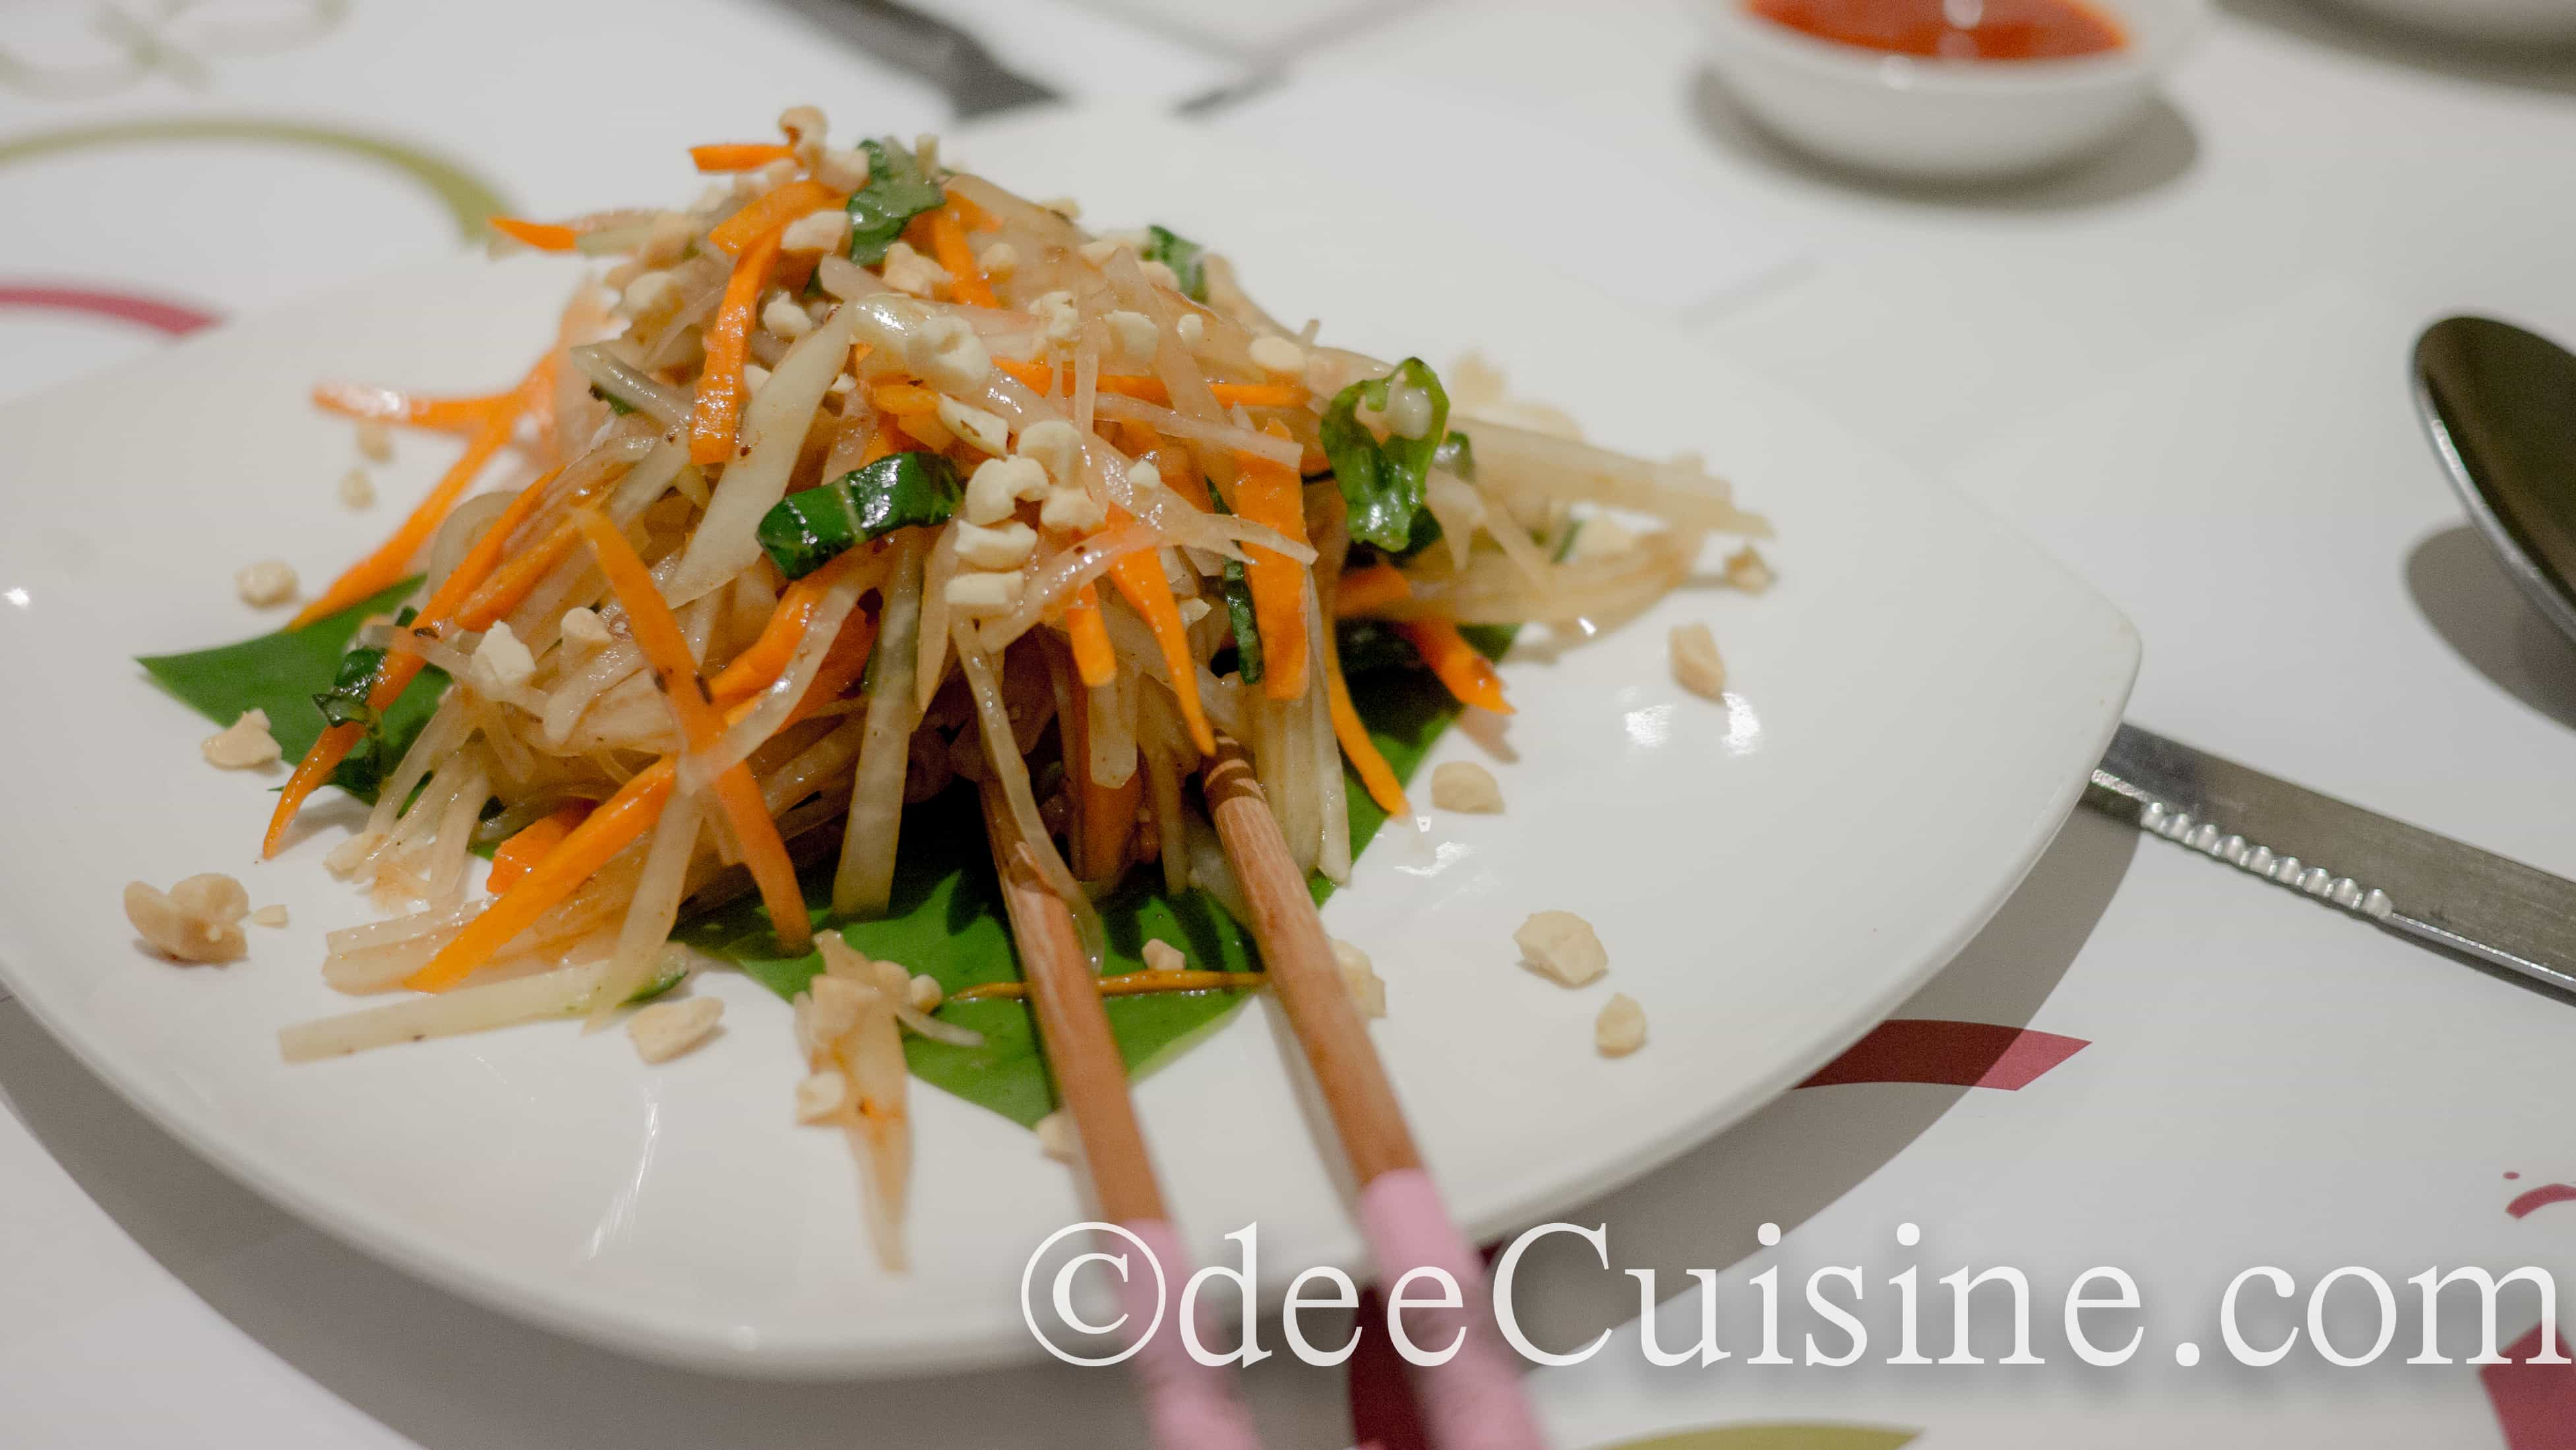 Indian thai fusion at chal chilli in nyc dee cuisine for Aura thai fusion cuisine new york ny